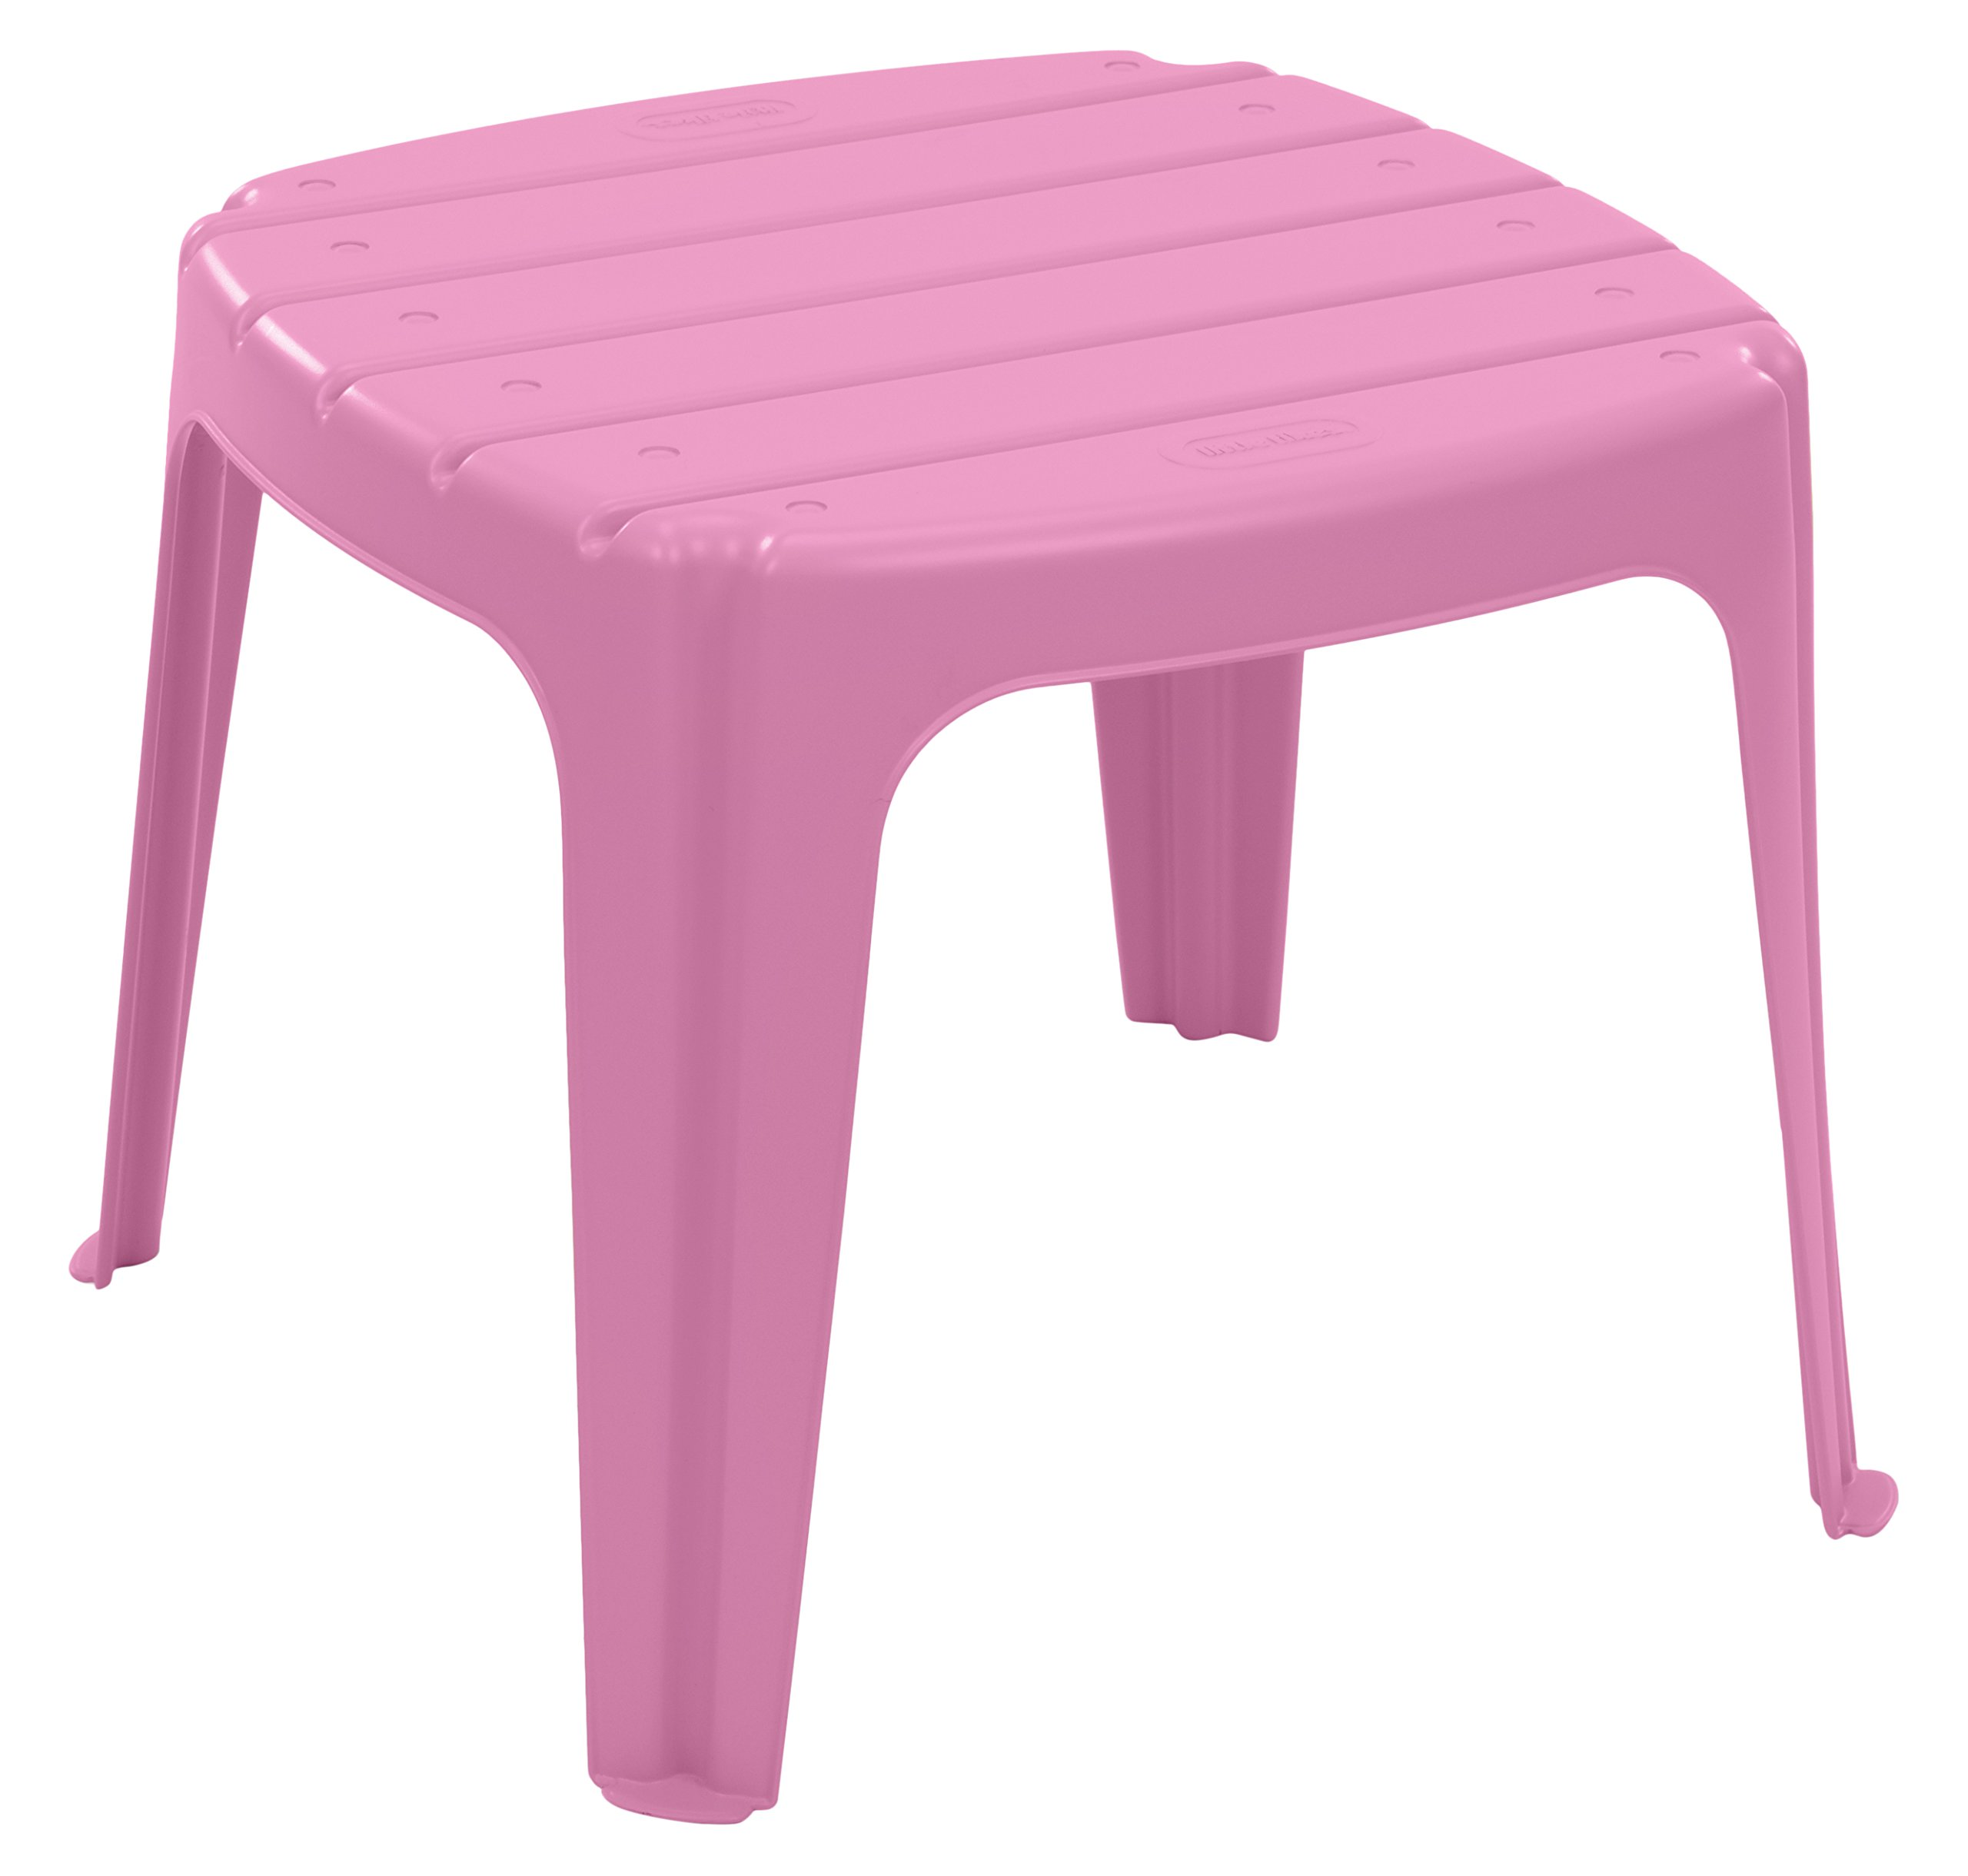 Little Tikes Garden Table, Pink by Little Tikes